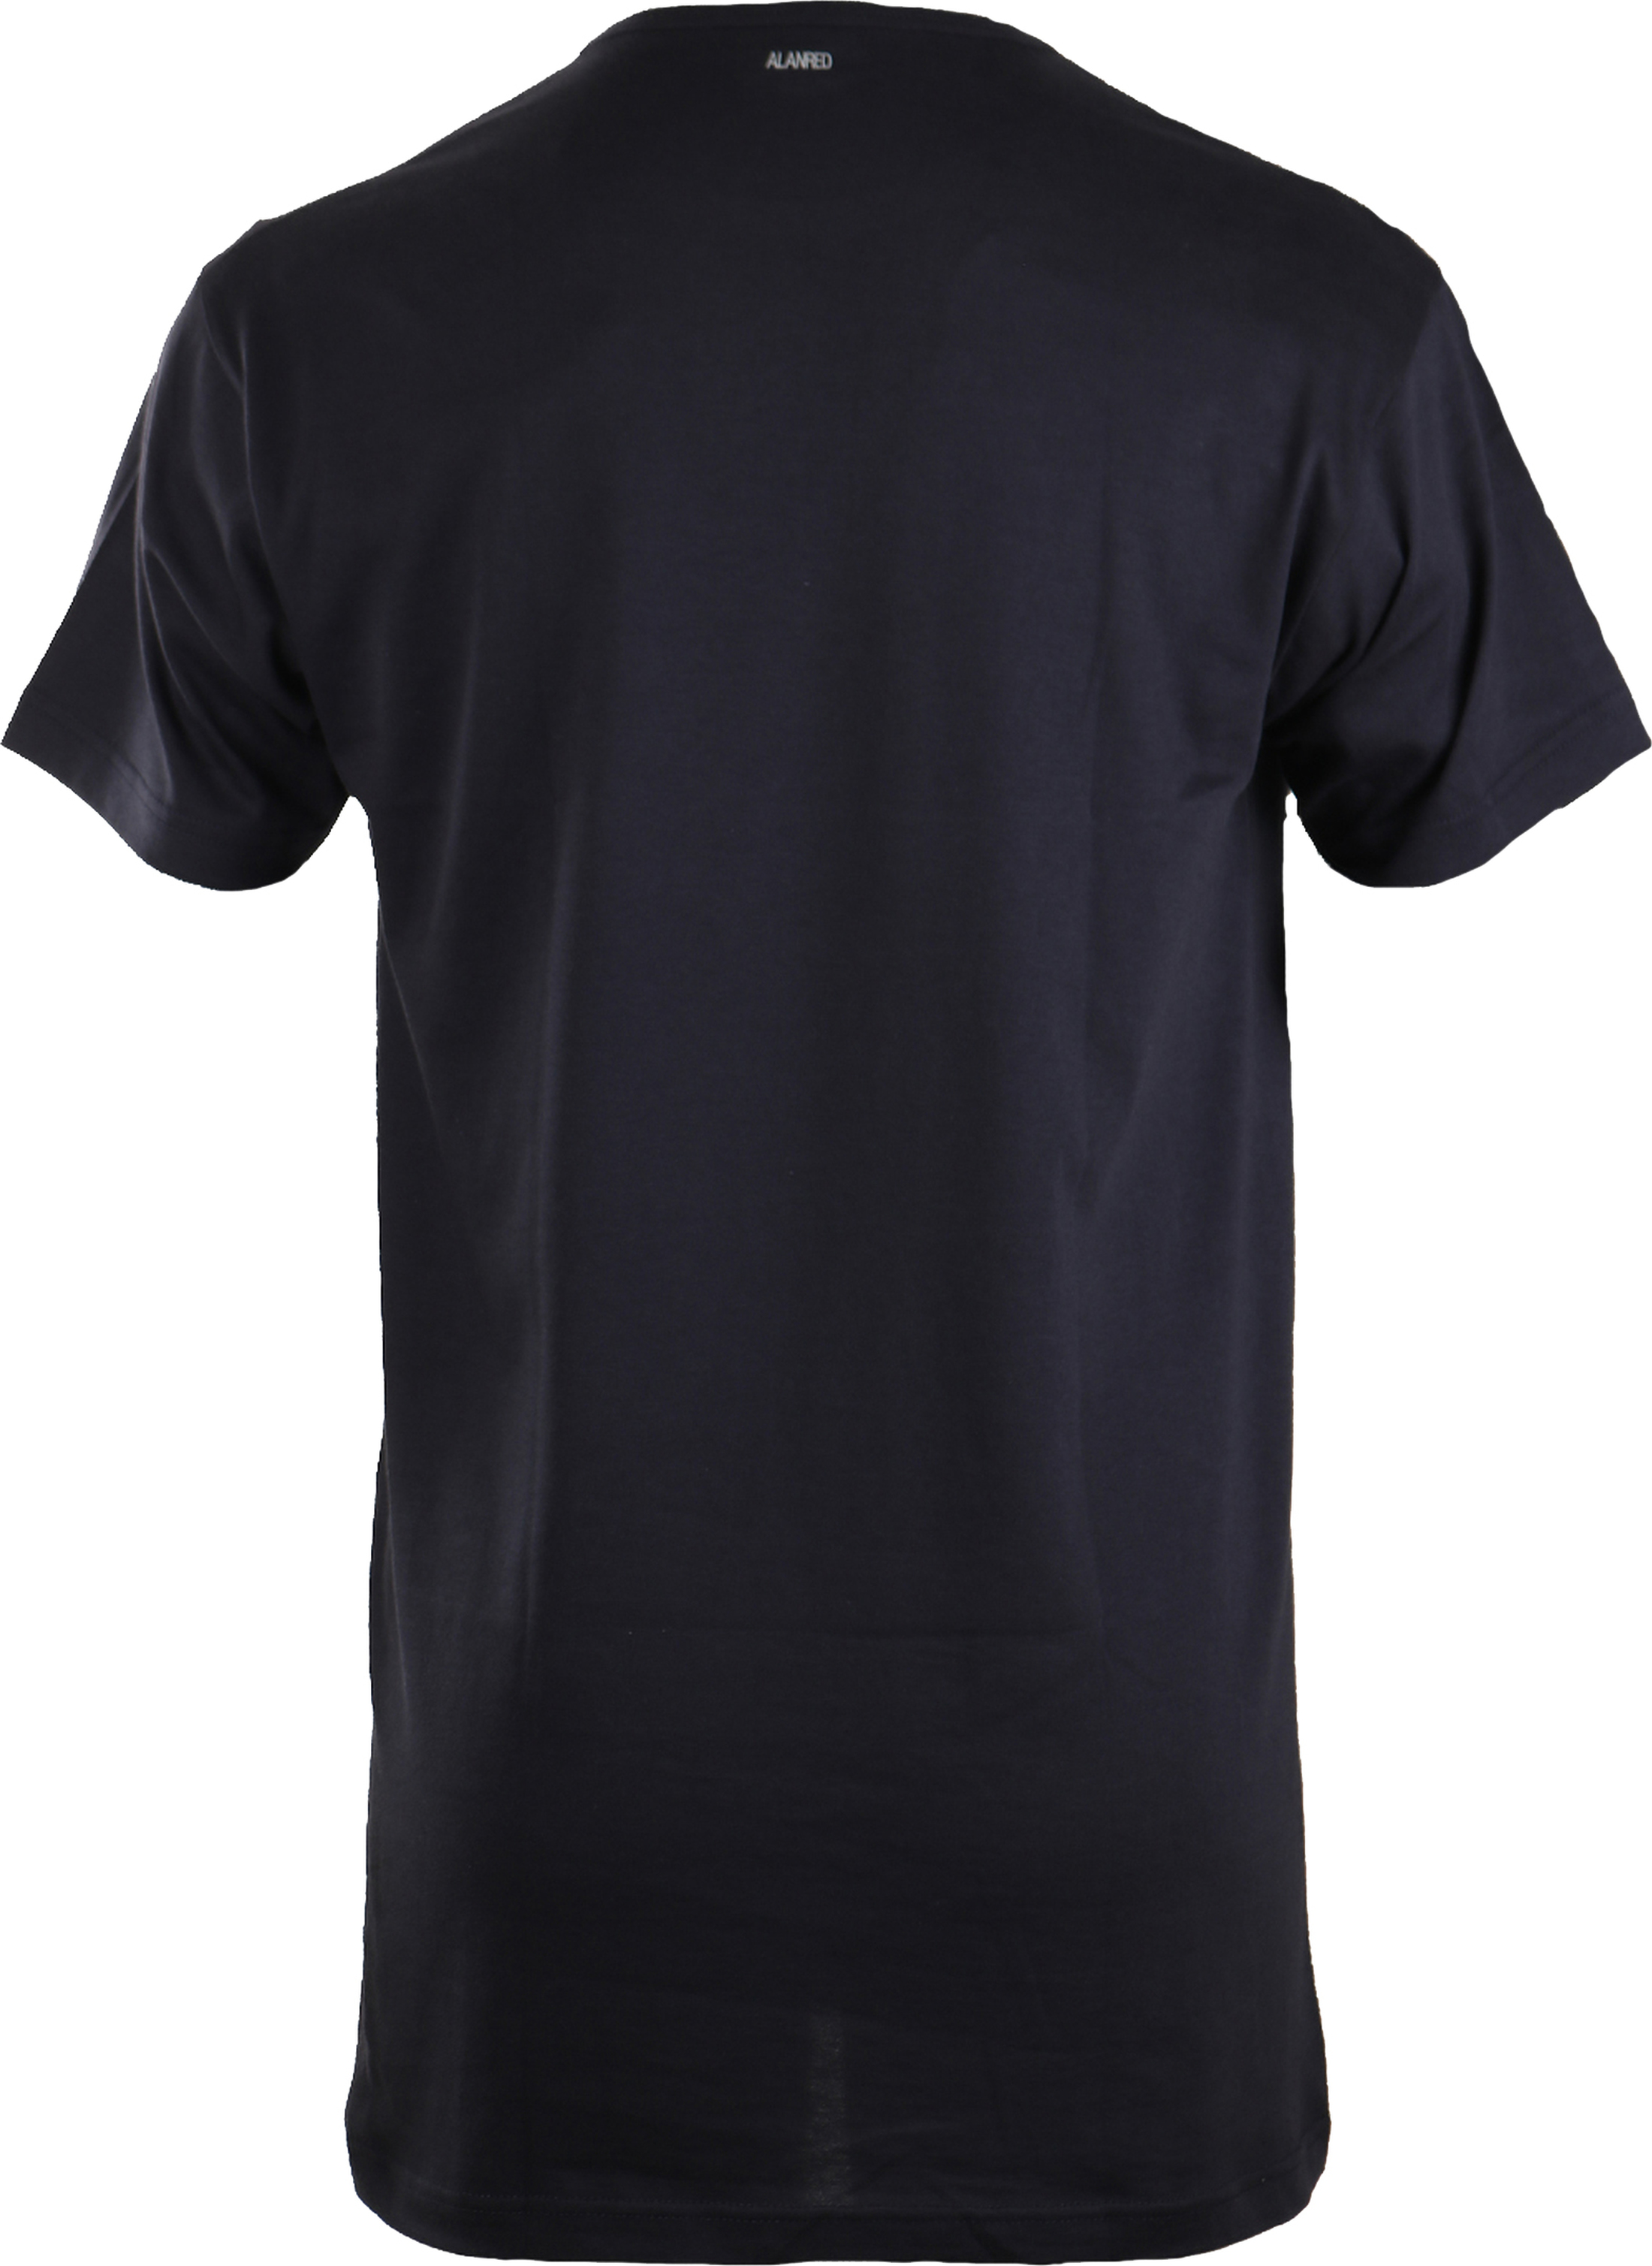 Alan Red Extra Lang T-Shirts Derby Dunkelblau (1-Pack) foto 1